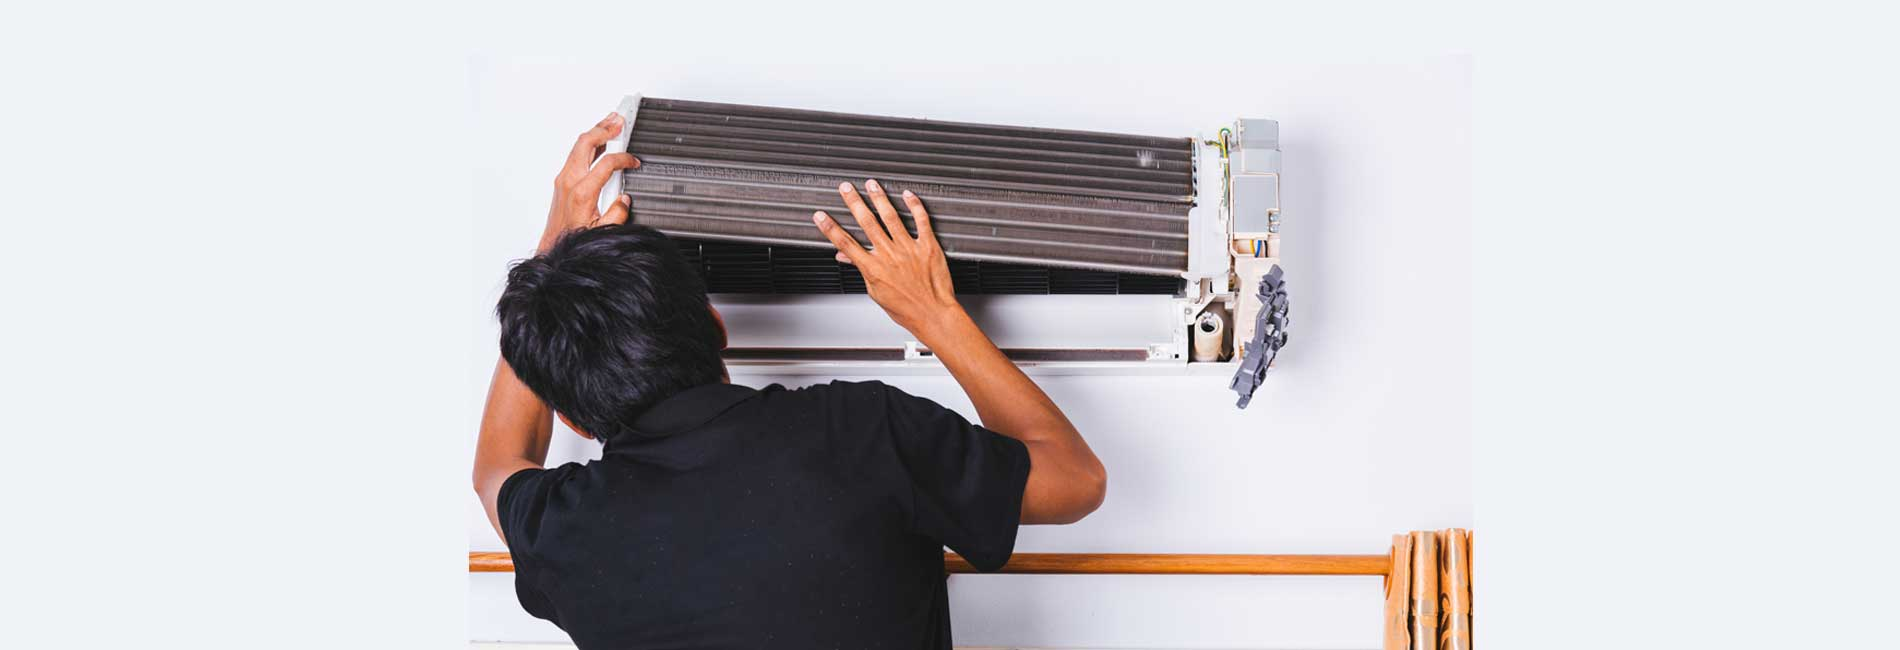 Bluestar Air Condition Service in Korattur